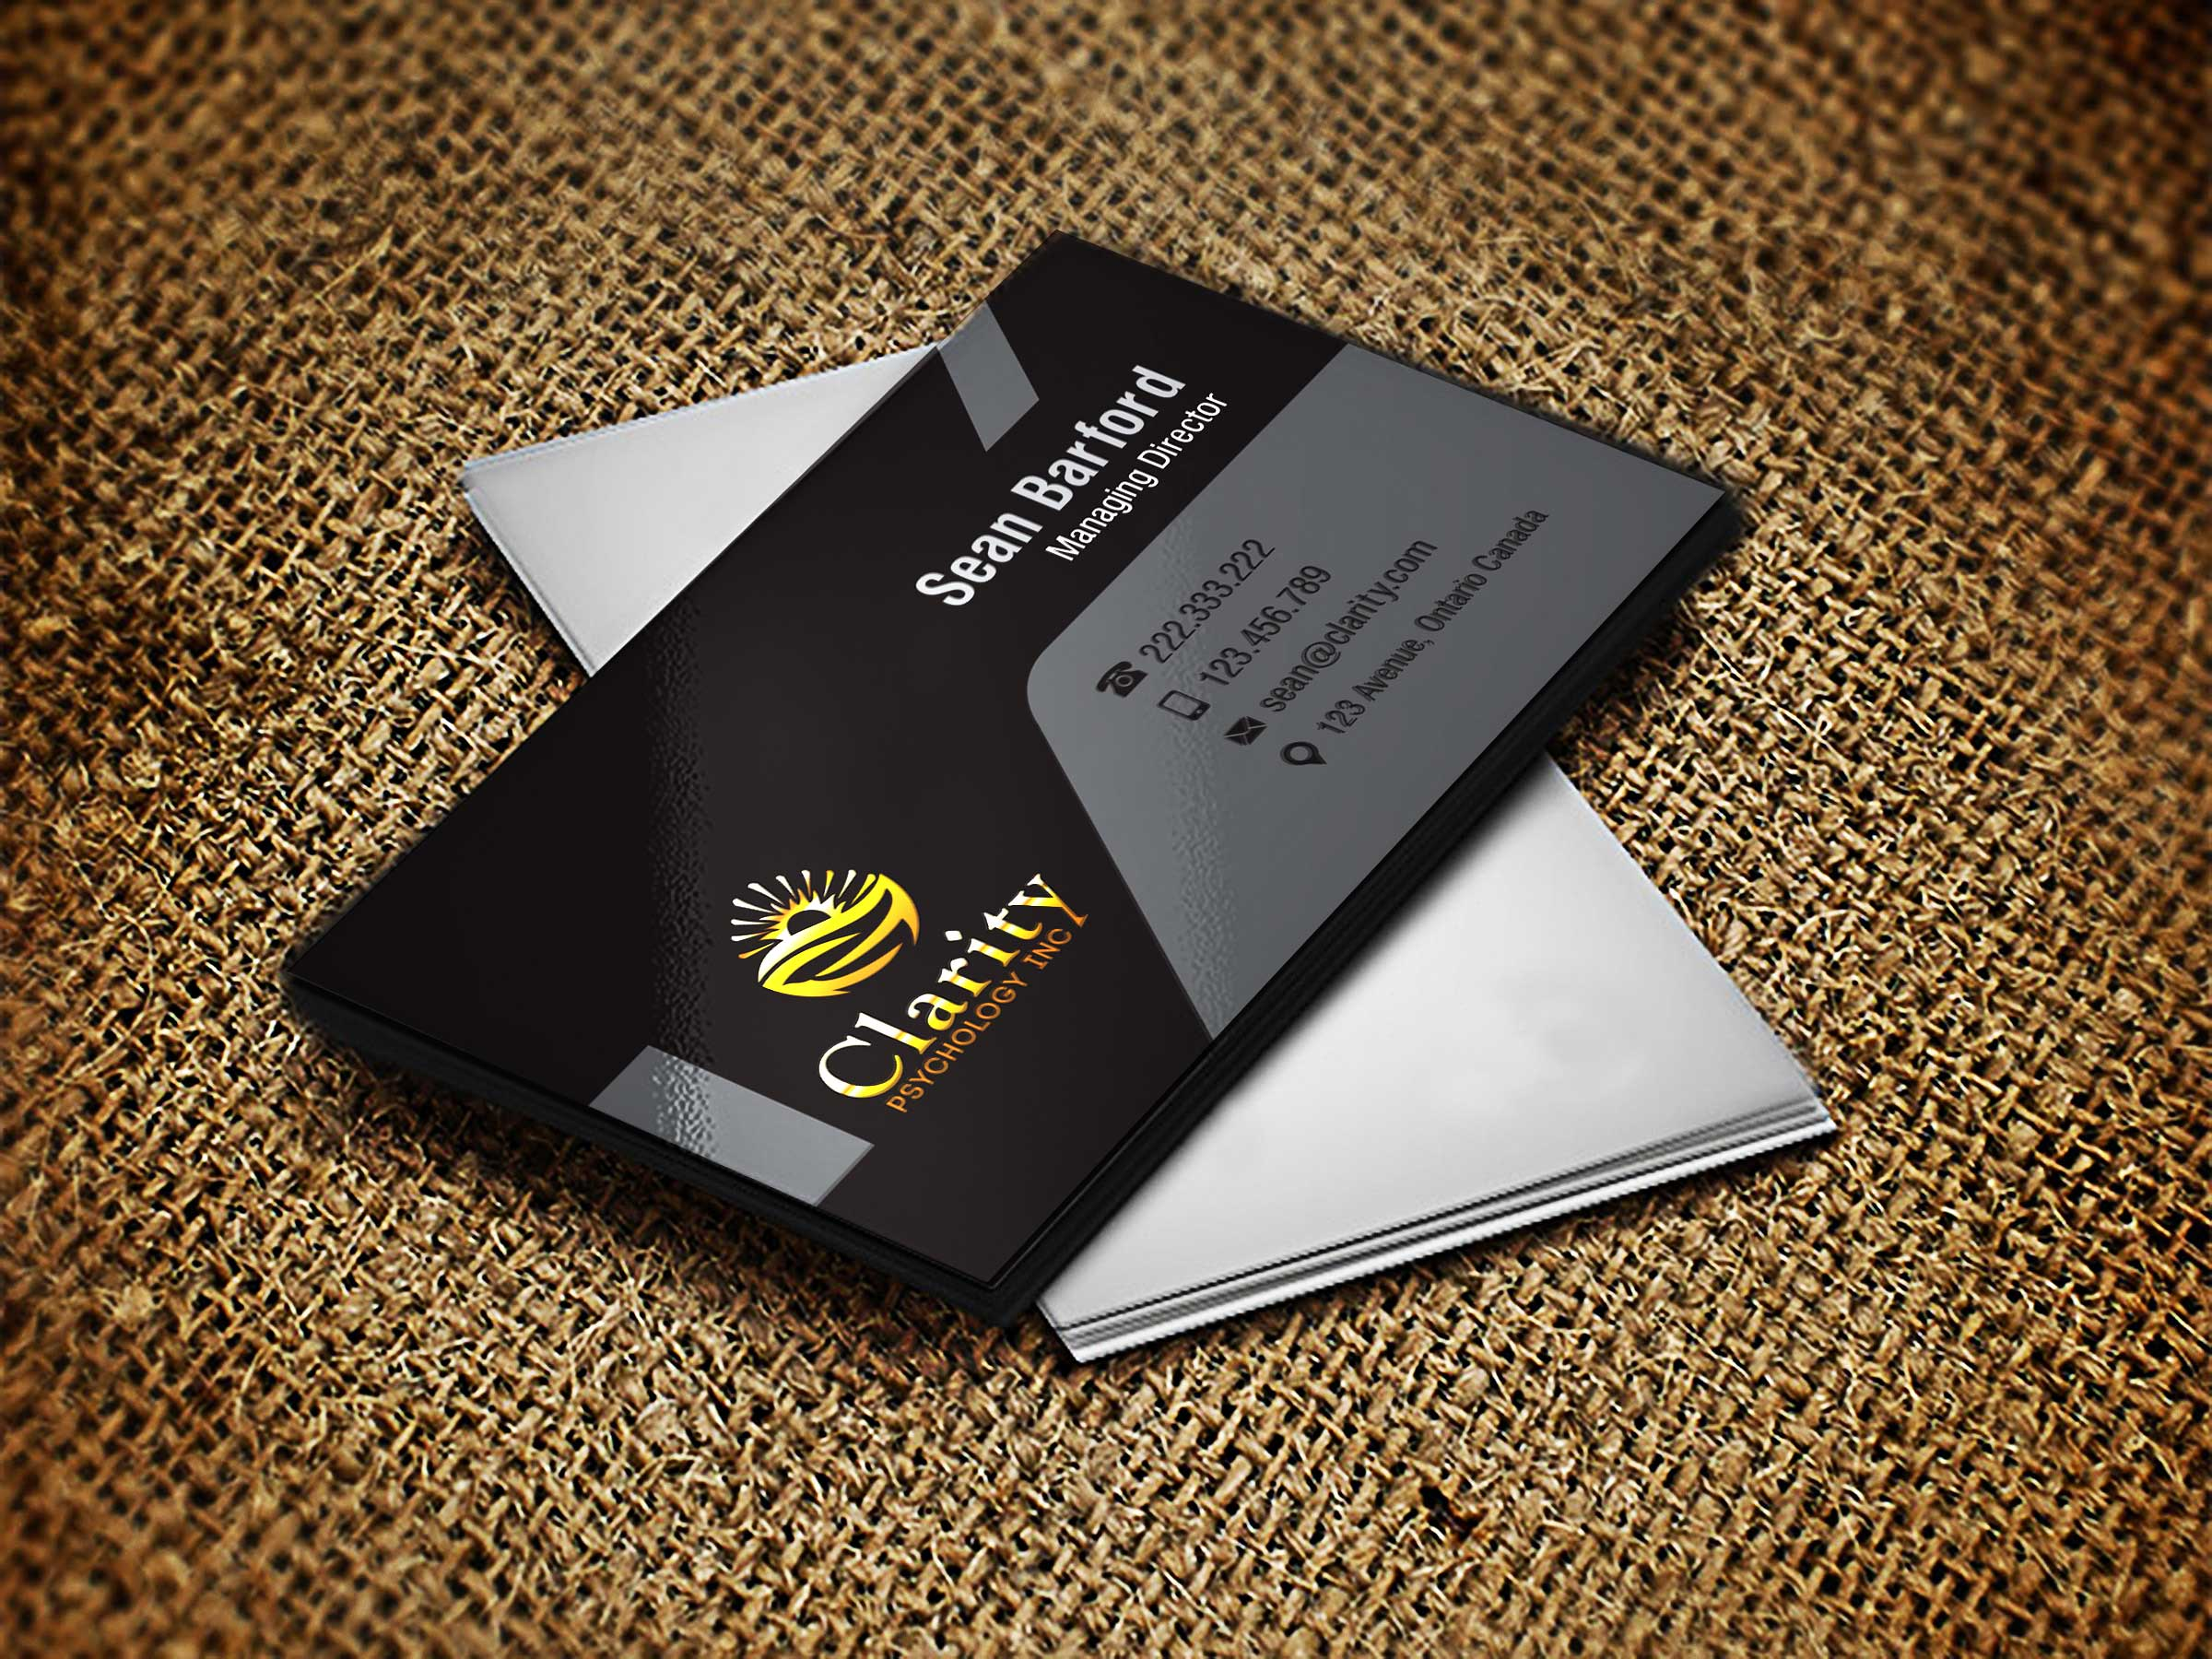 Home business card your business card designer inducedfo linkedchoose your printable business card designbusiness card designer professional business card makerbusiness card maker designer print your own reheart Image collections